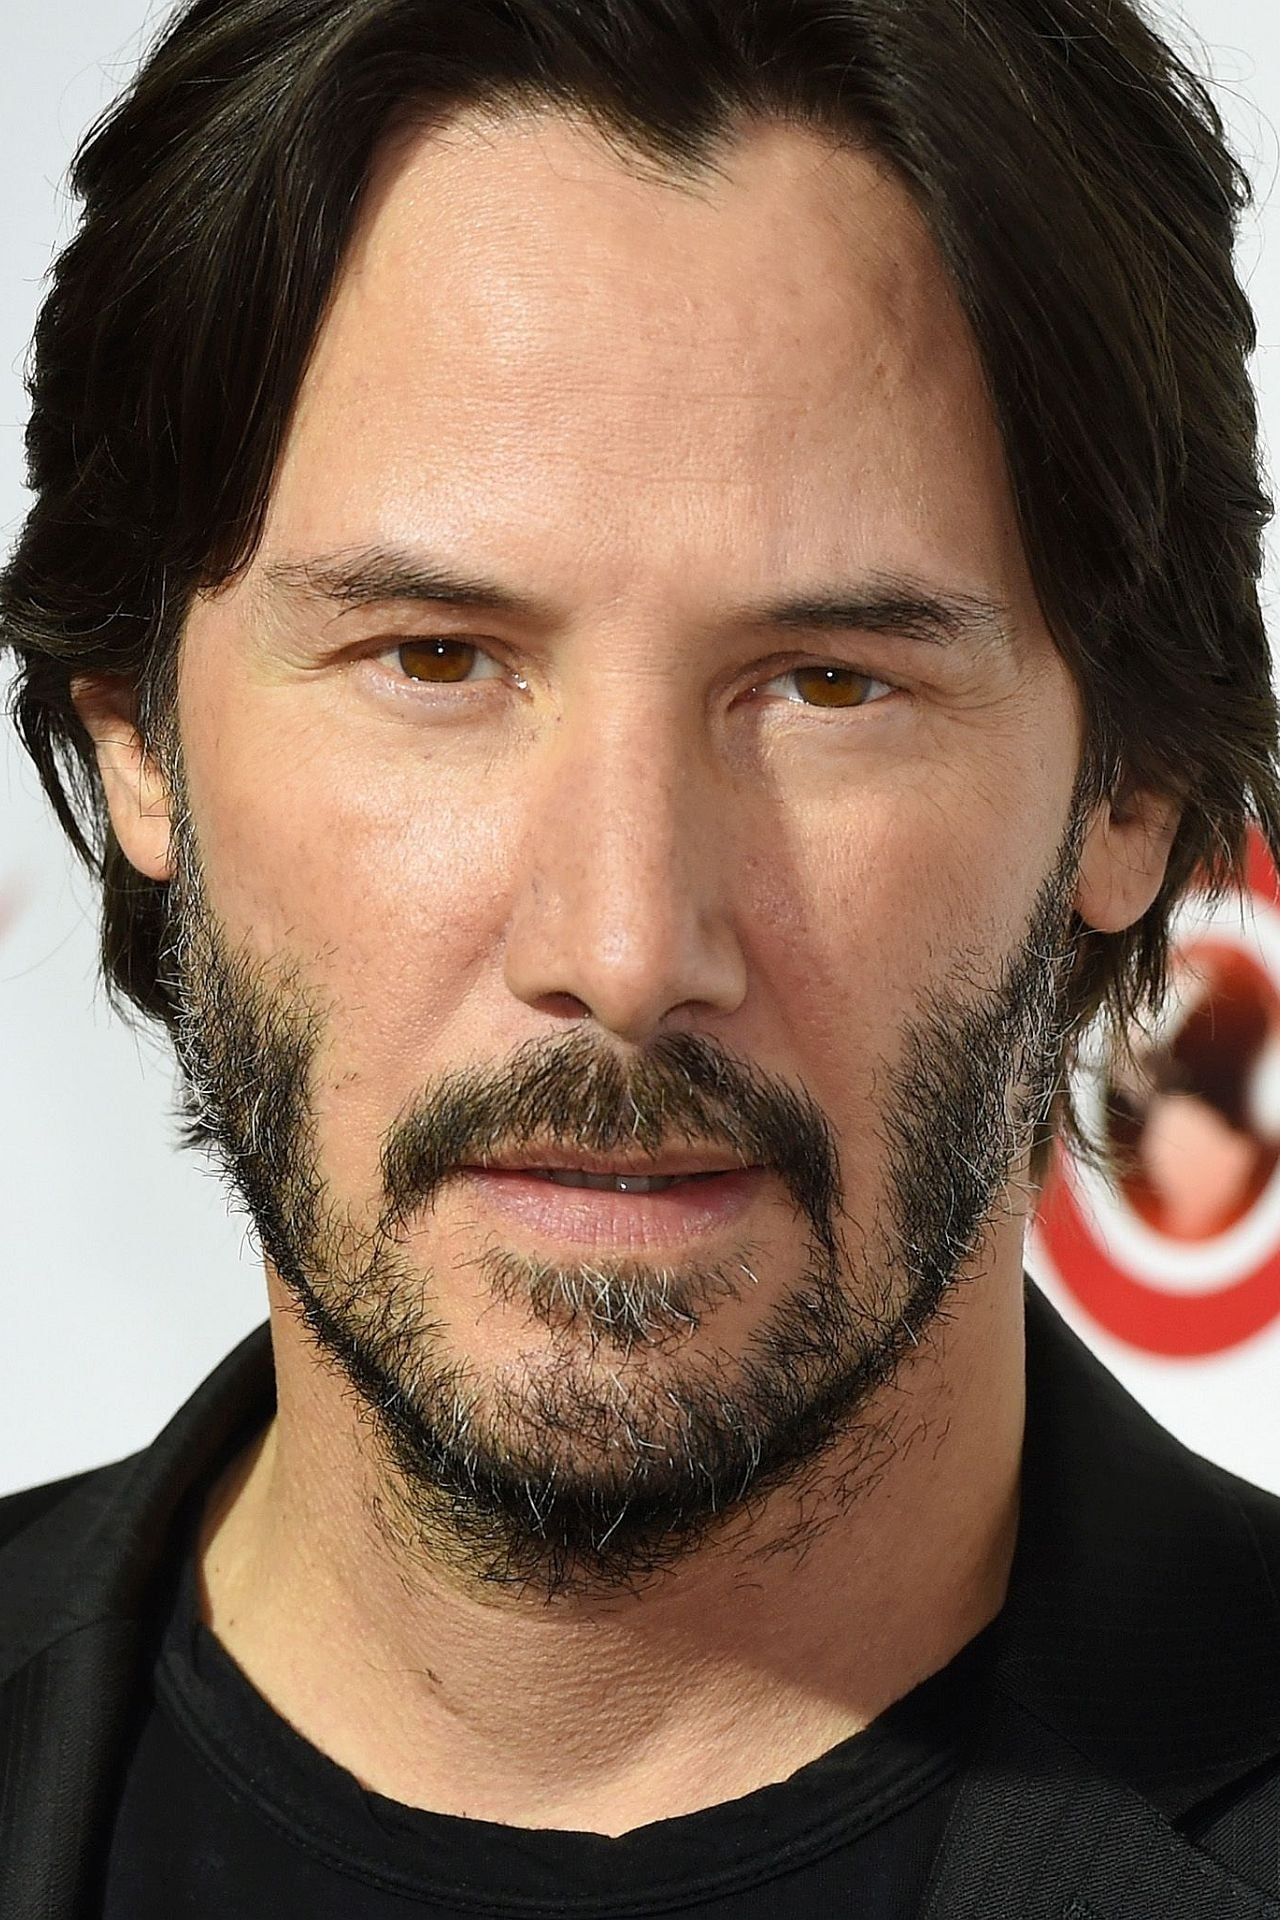 Keanu Reeves - Profile Images — The Movie Database (TMDb)